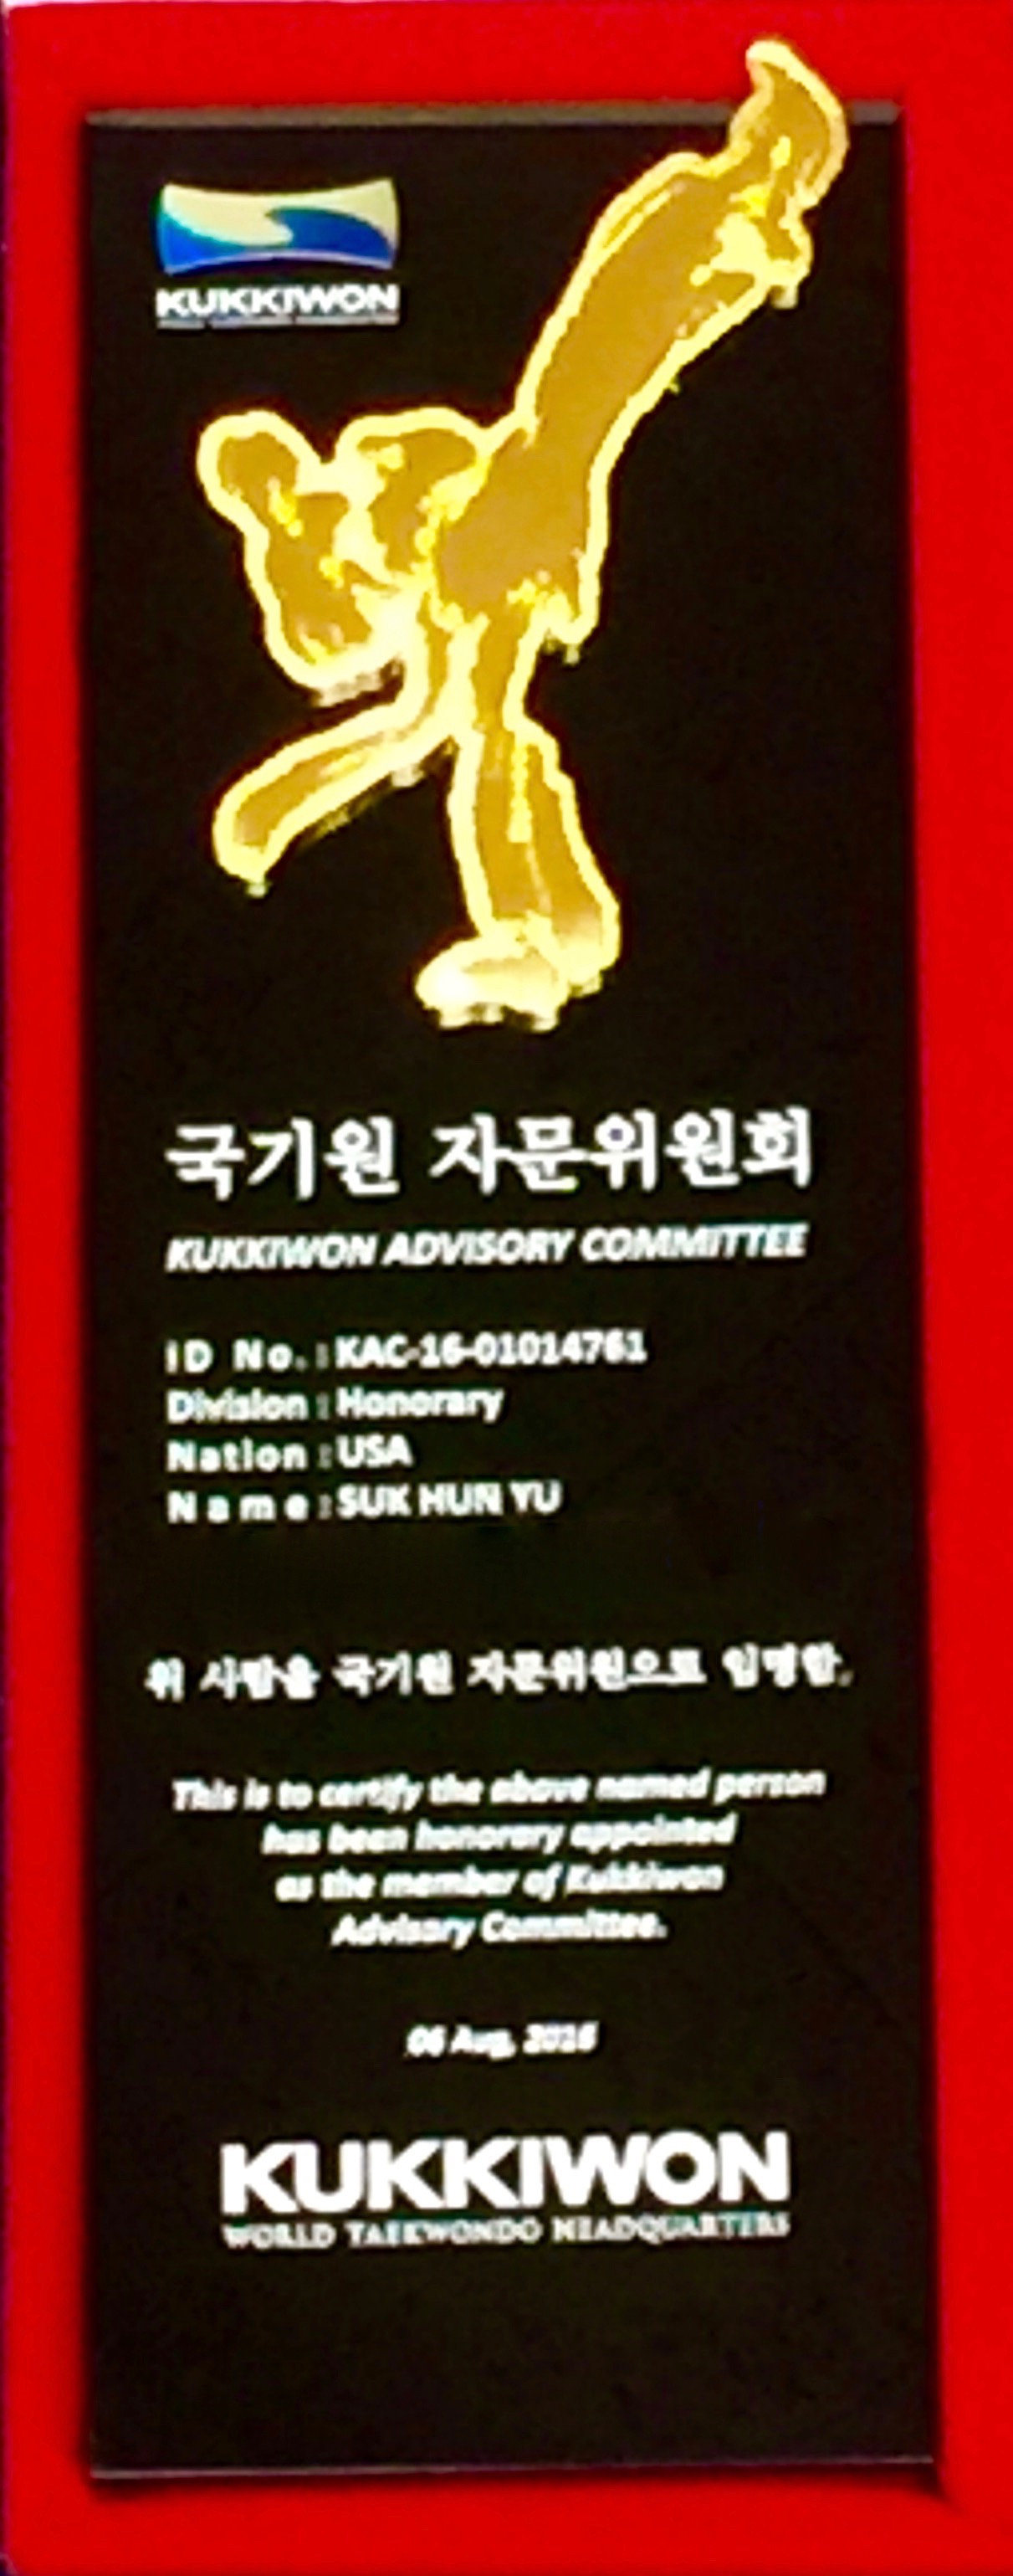 kukkiwon-world-tae-kwon-do-headquarters-international-advisory-board-recogition-plaque